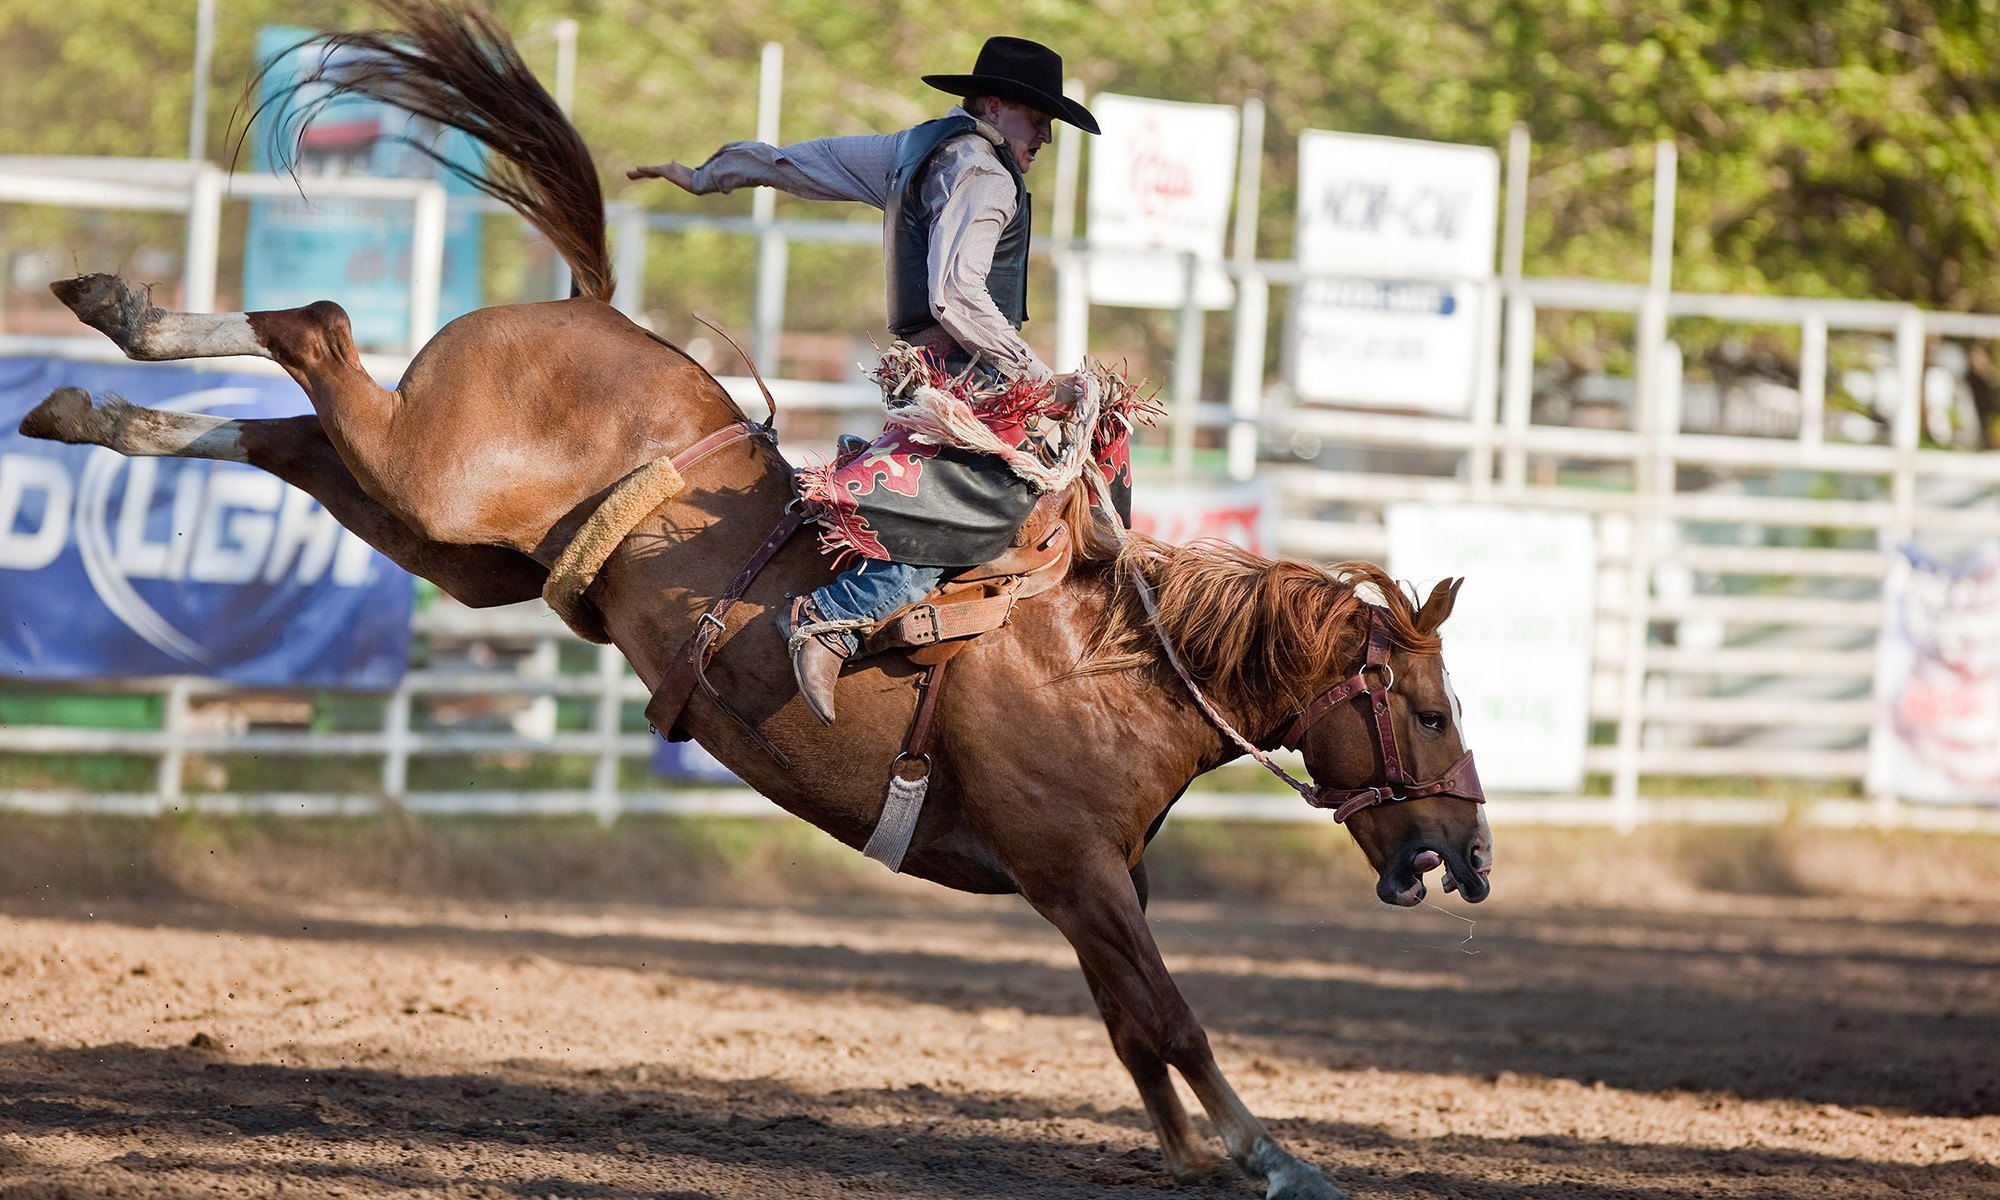 Picture of a cowboy riding a bucking horse